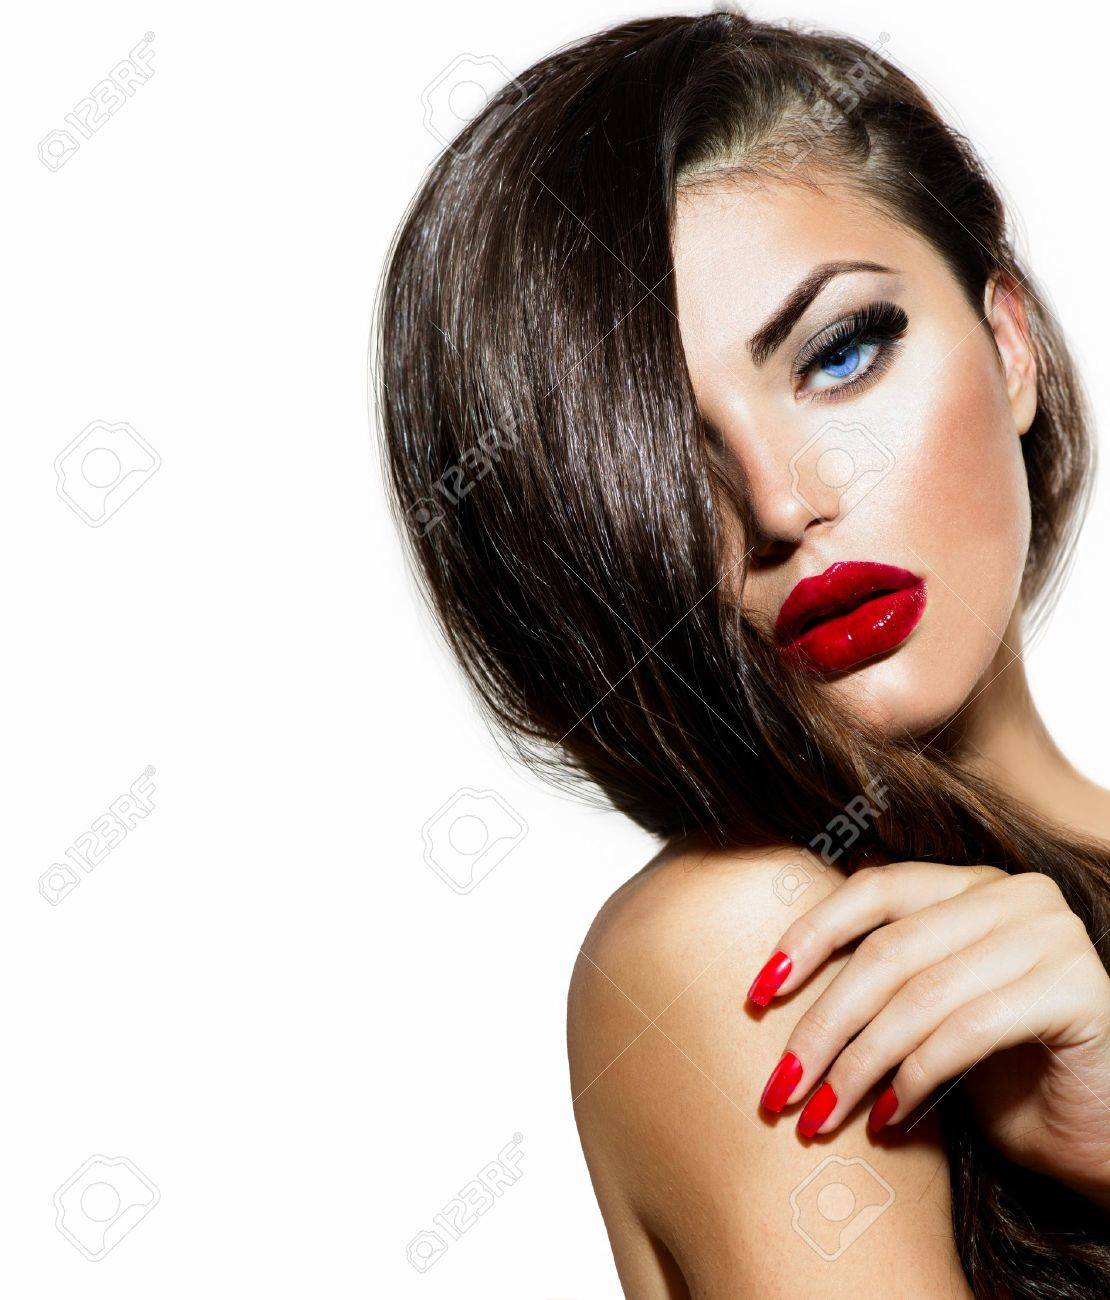 Sexy Beauty Girl with Red Lips and Nails  Provocative Make up Stock Photo - 21065050